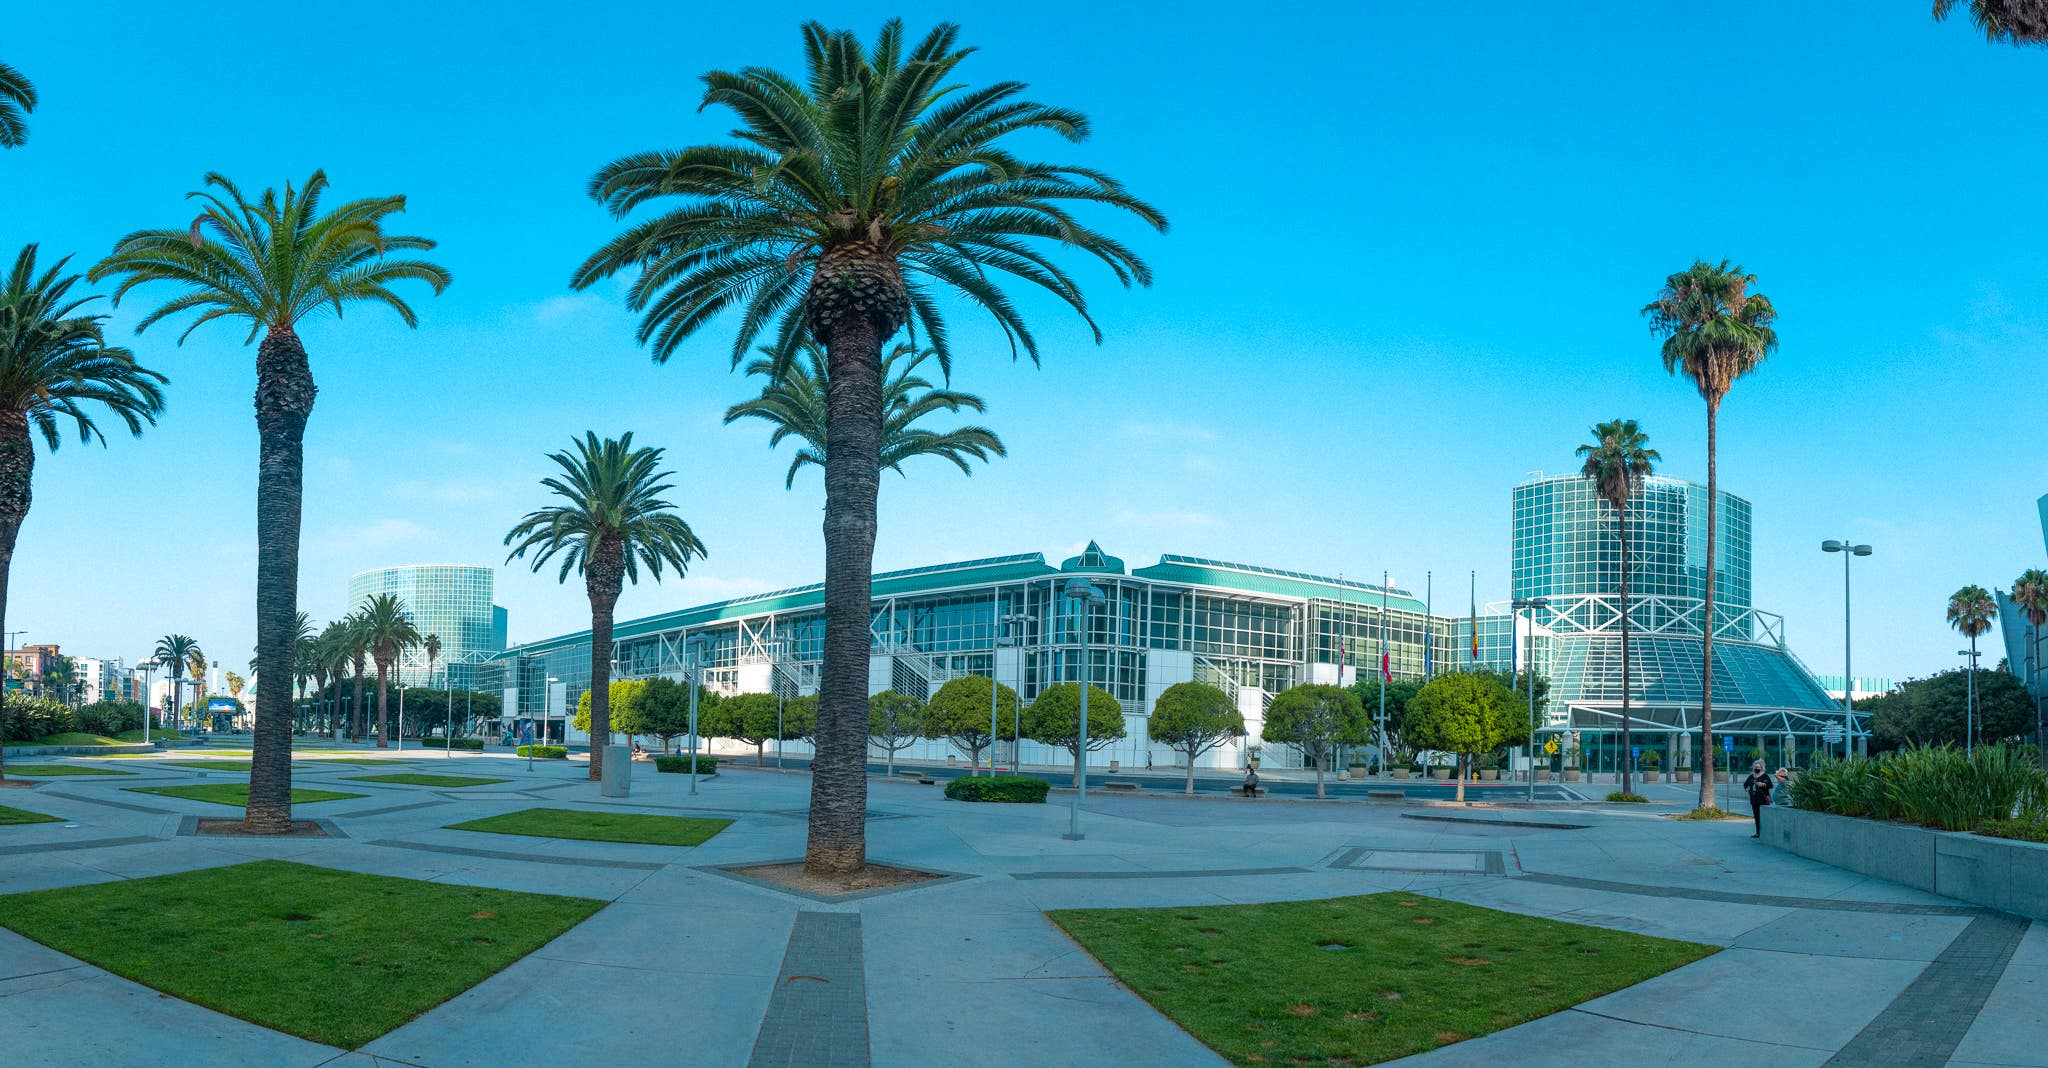 Los Angeles Convention Center panoramic